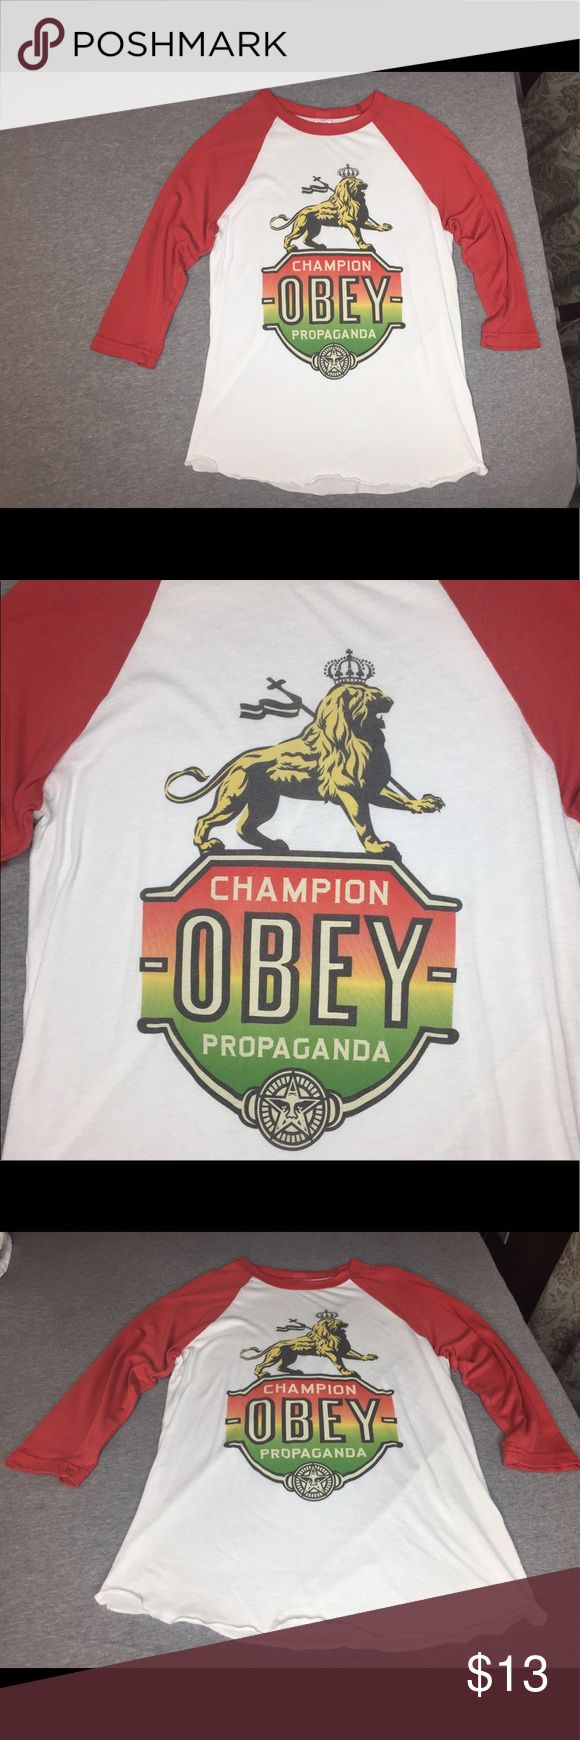 Obey Raglan Tee - Rasta Colors! In excellent pre-loved condition! Very minor pilling. Still has tons of wear. Smoke free home! Bundle and save! Obey Tops Tees - Long Sleeve